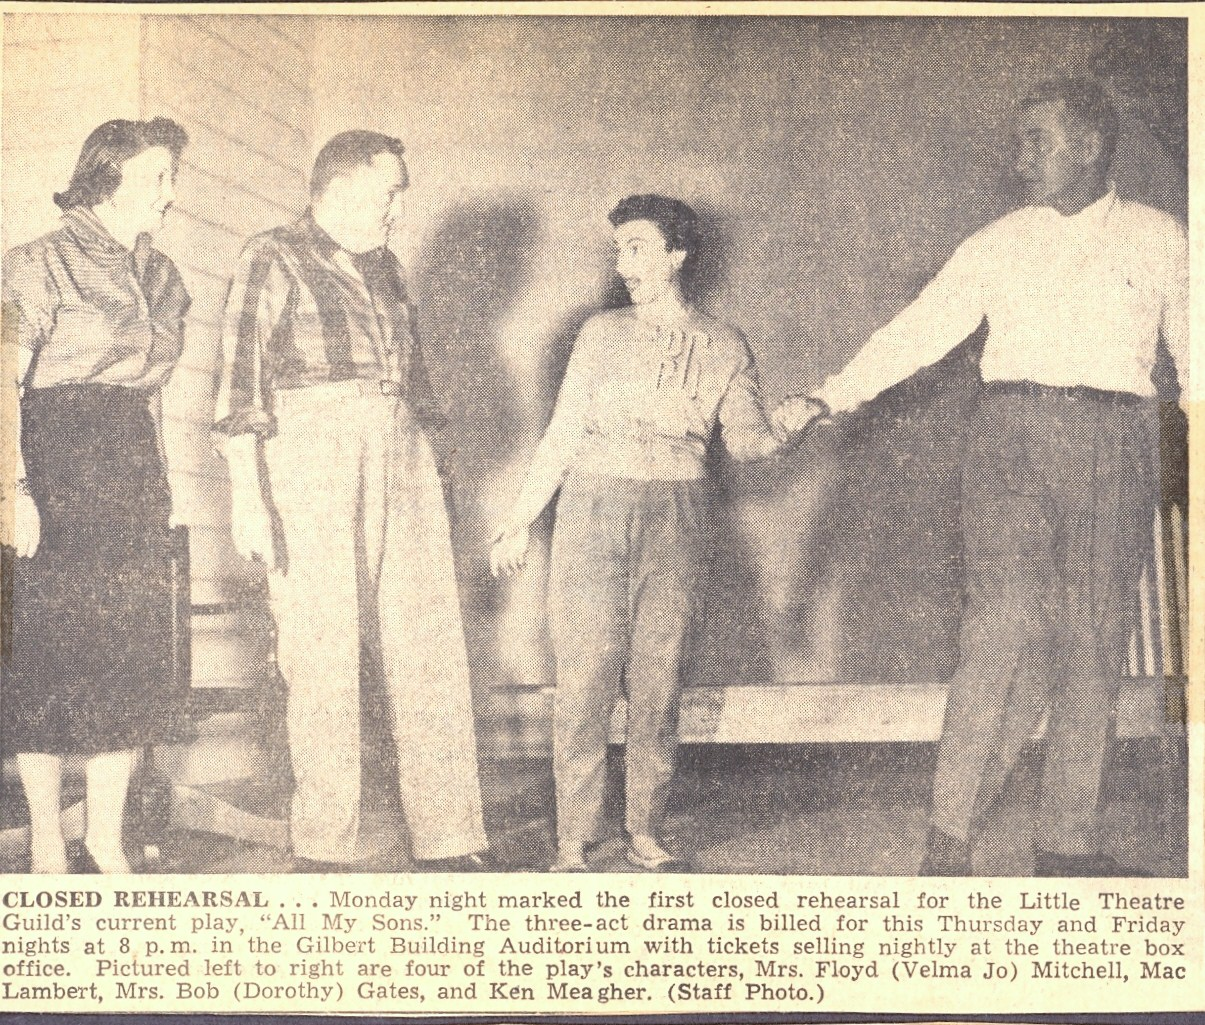 All My Sons Newspaper photo 2